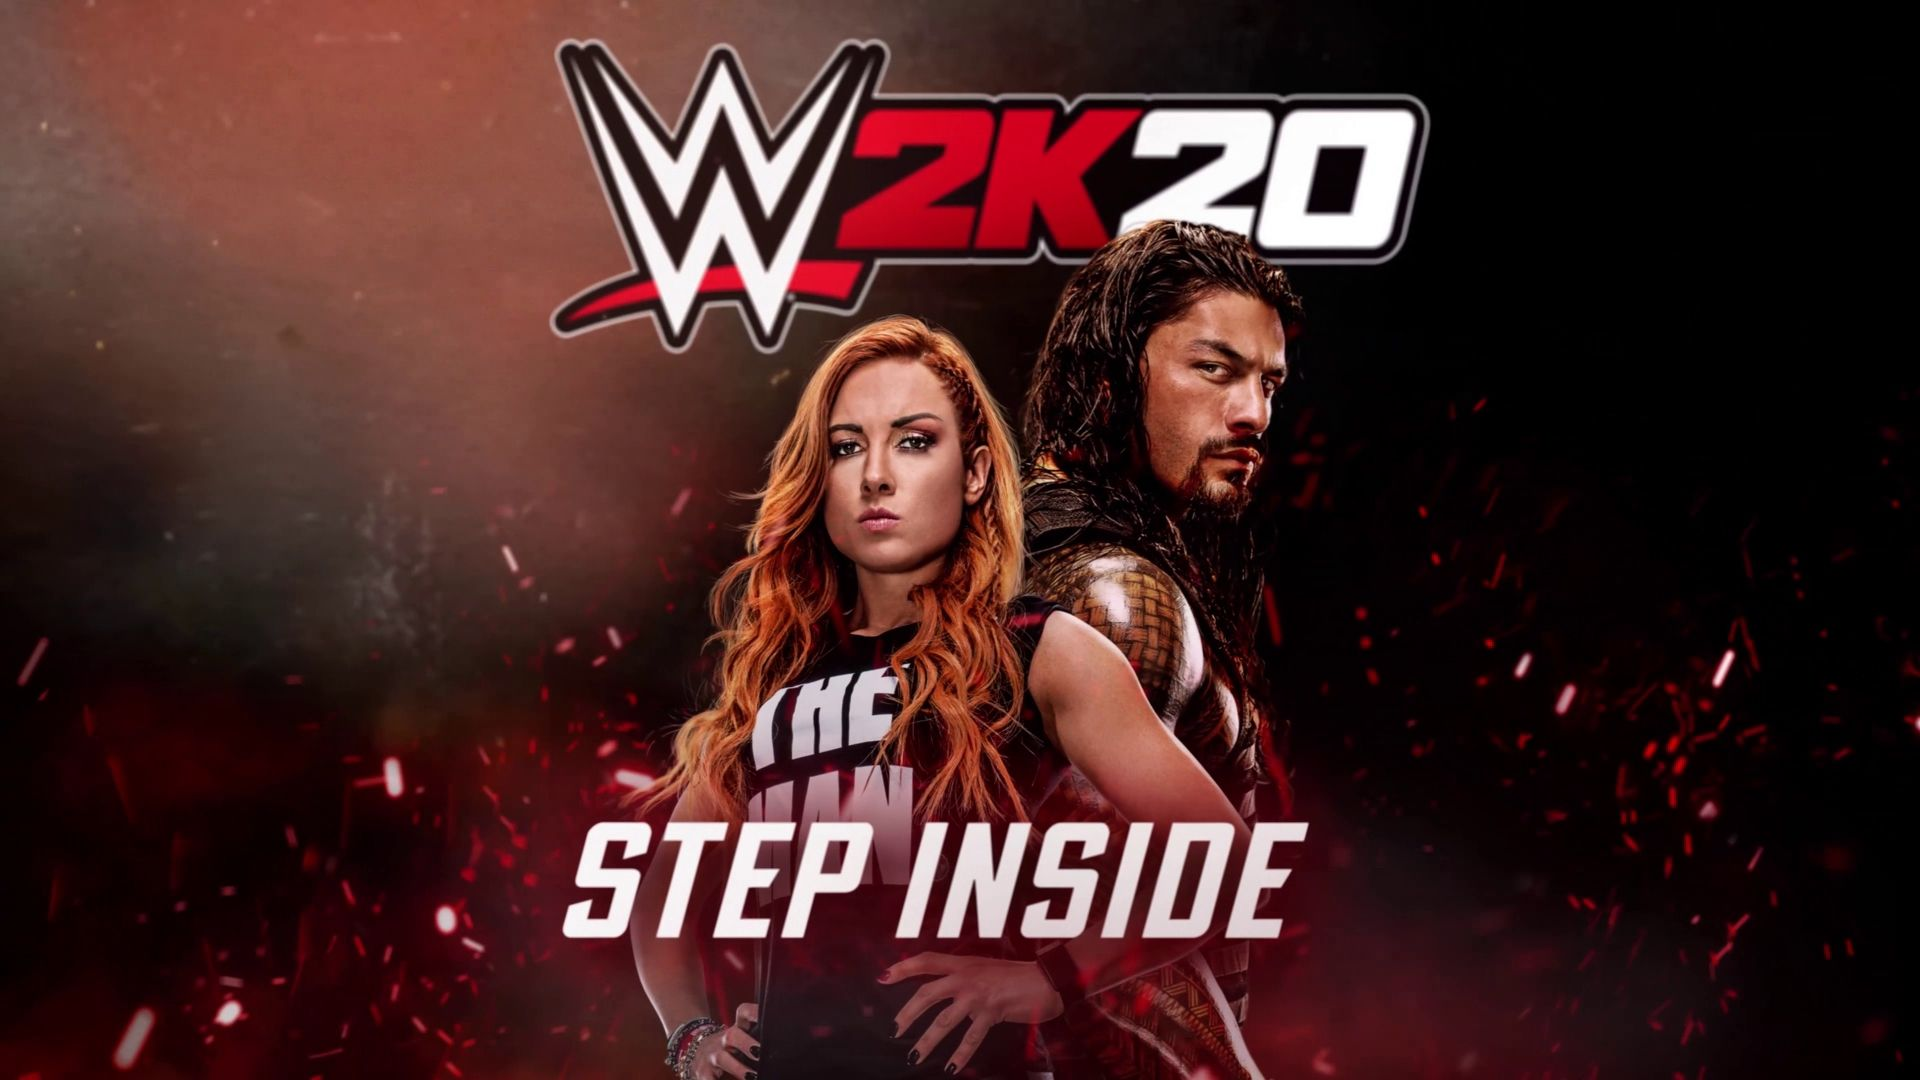 WWE 2K20 Wallpapers   Top WWE 2K20 Backgrounds   WallpaperAccess 1920x1080